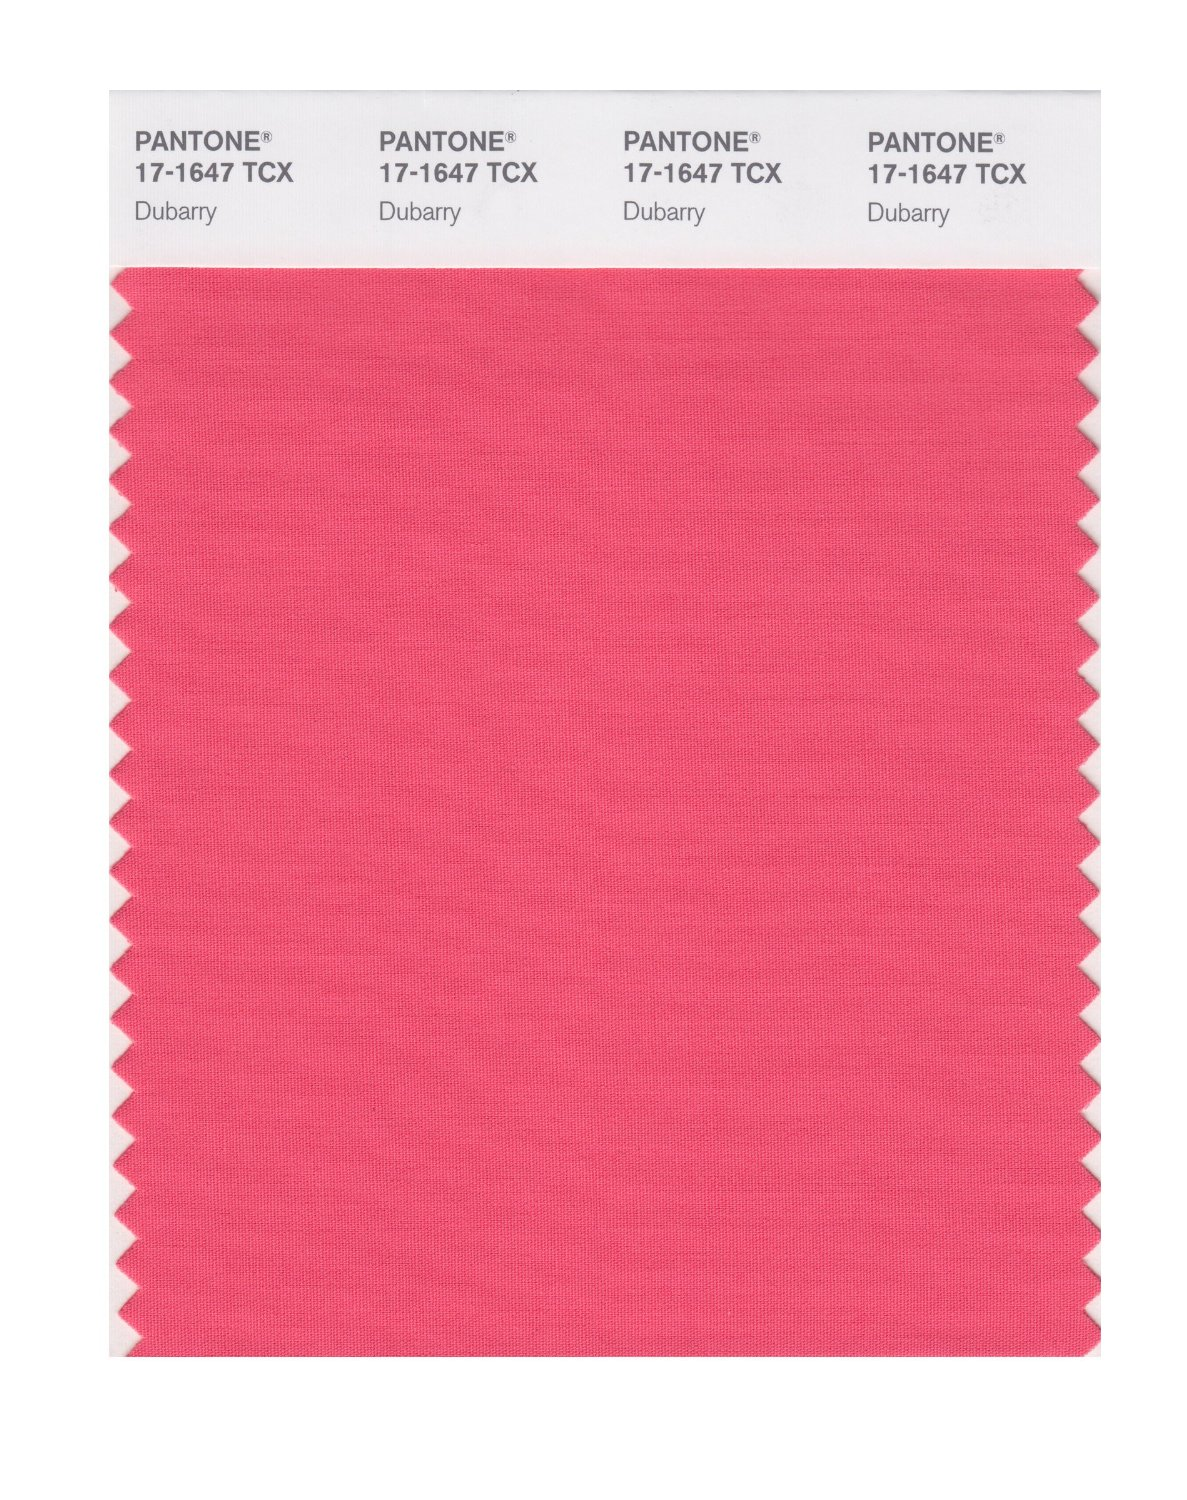 Pantone Smart Swatch 17-1647 Dubarry